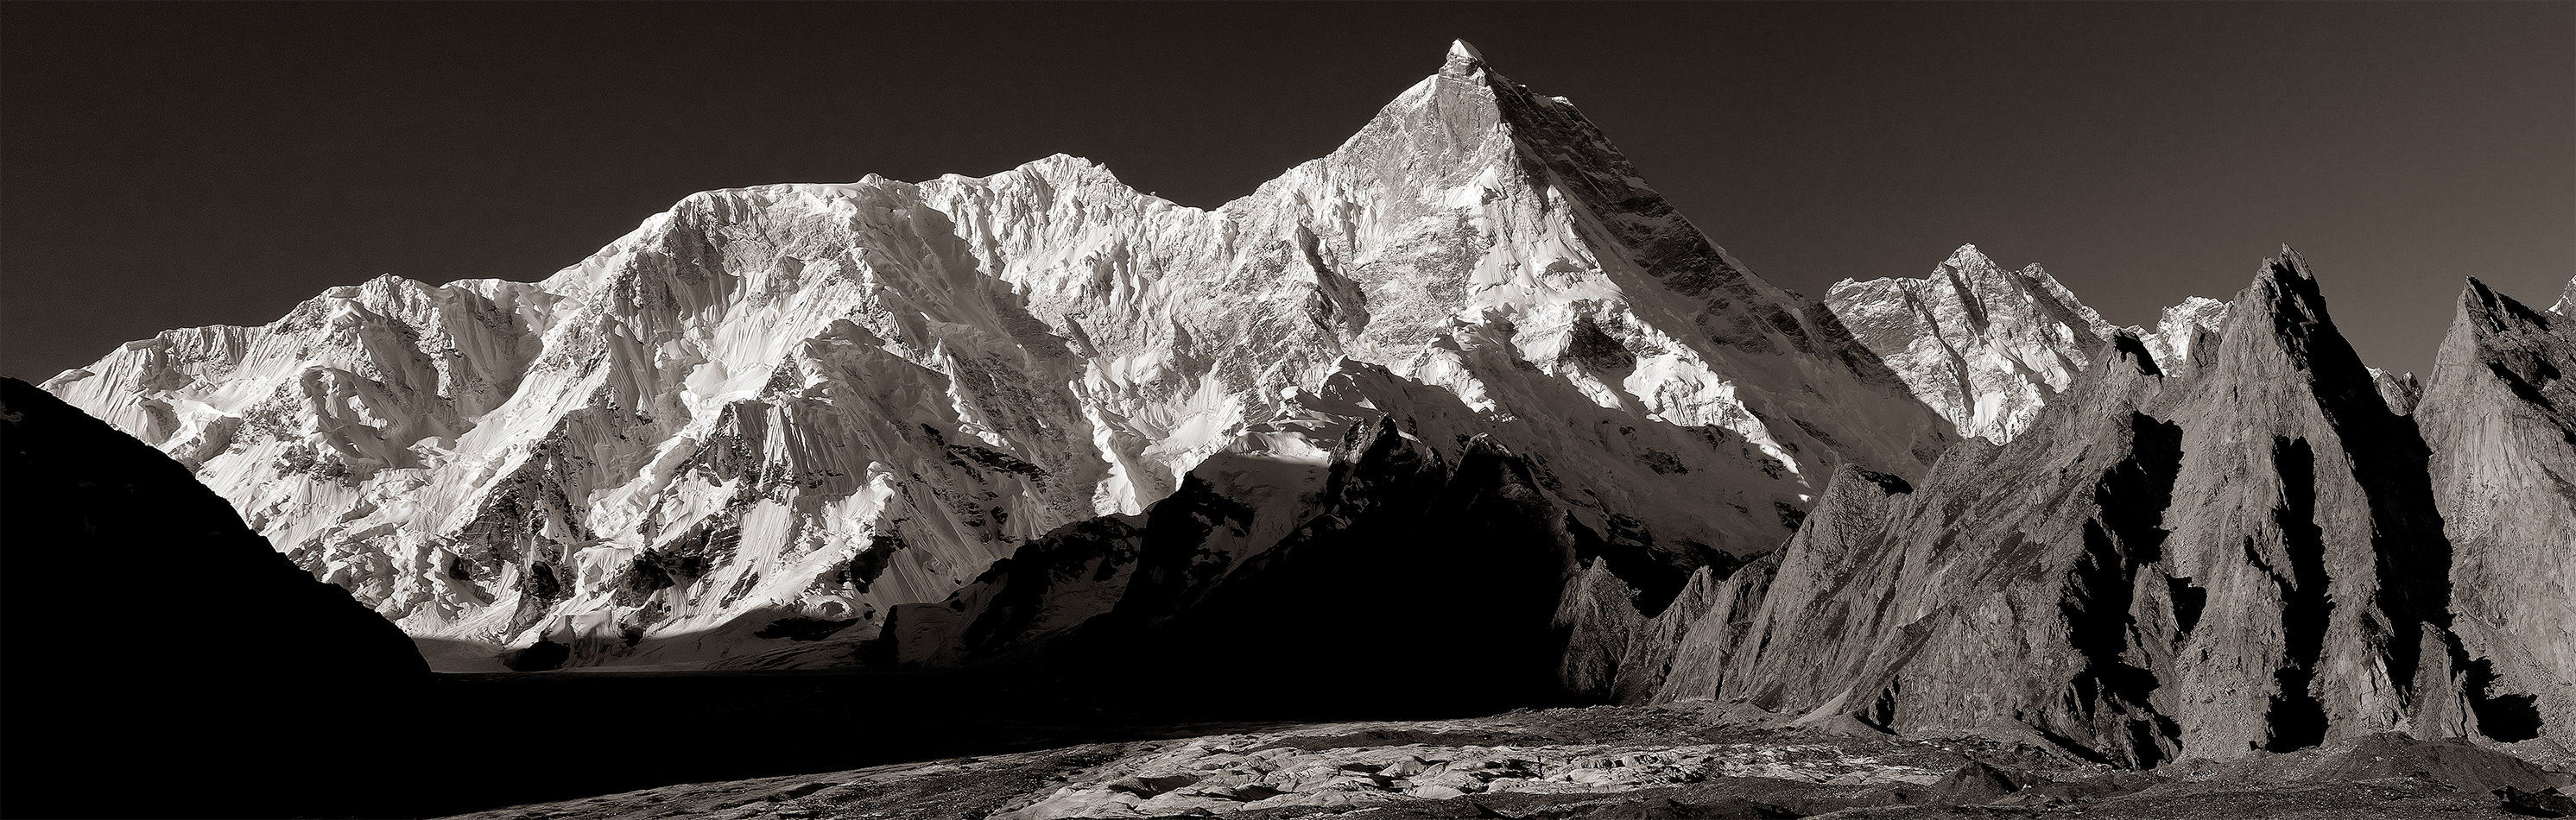 morning_masherbrum_pano_forthe101 copy